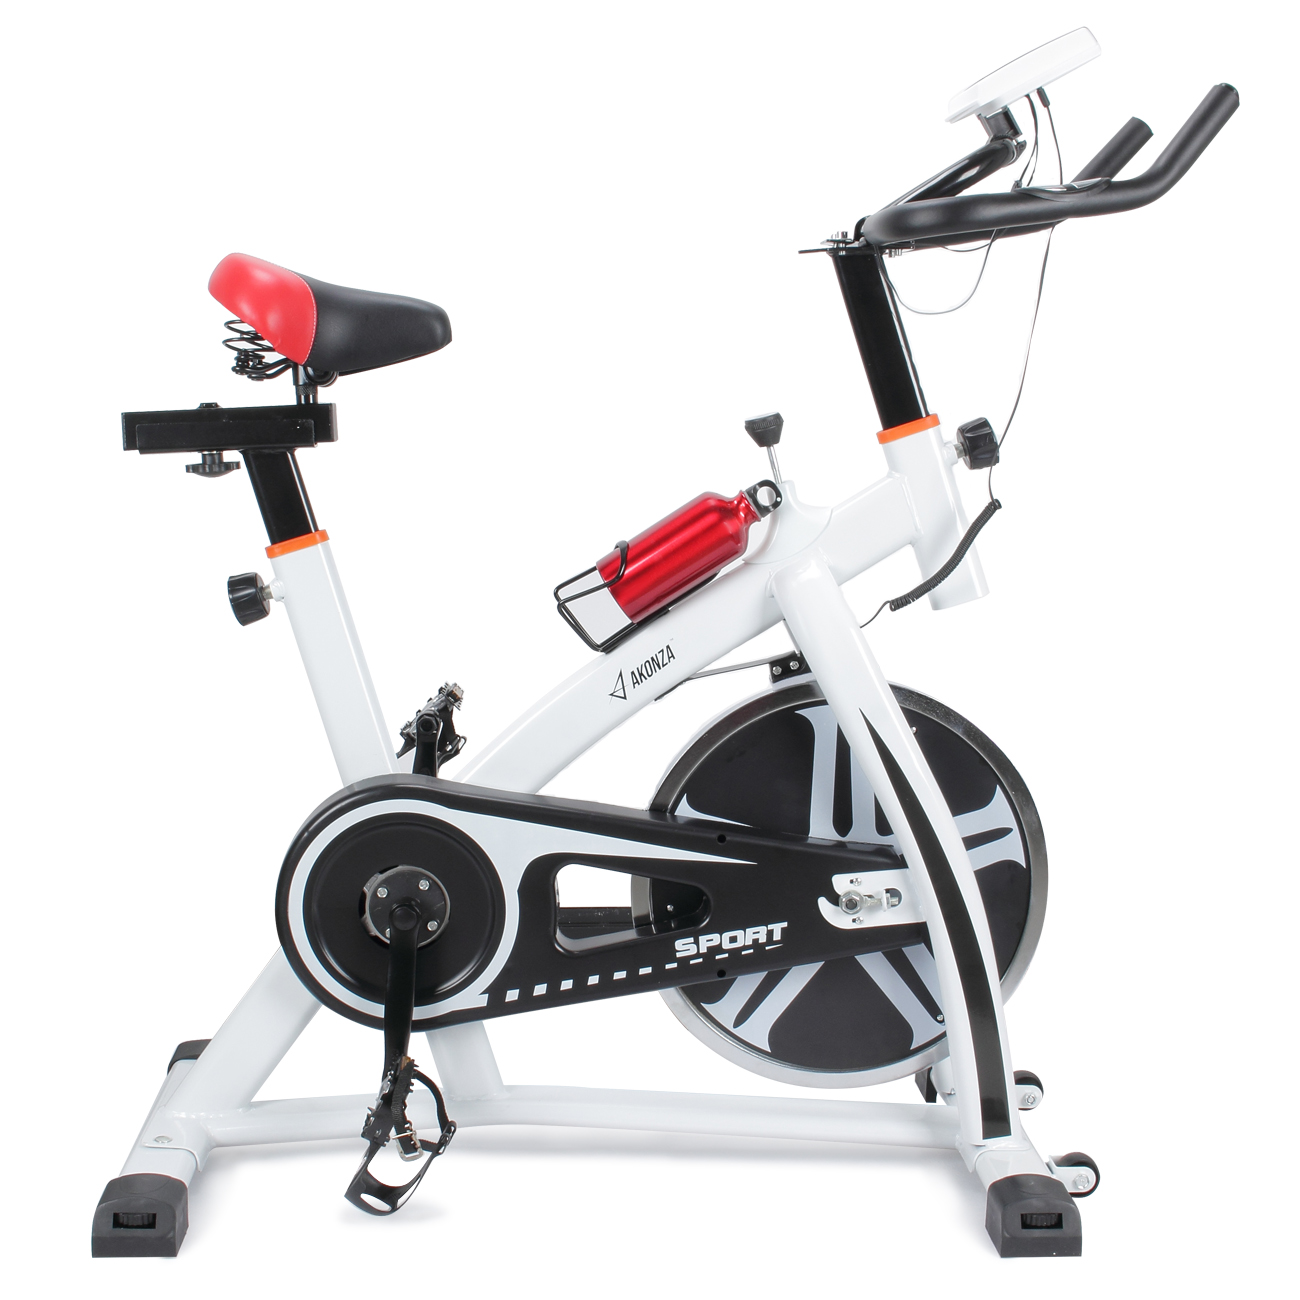 Exercise Fitness: Stationary Exercise Bicycle Indoor Cycling Cardio Workout